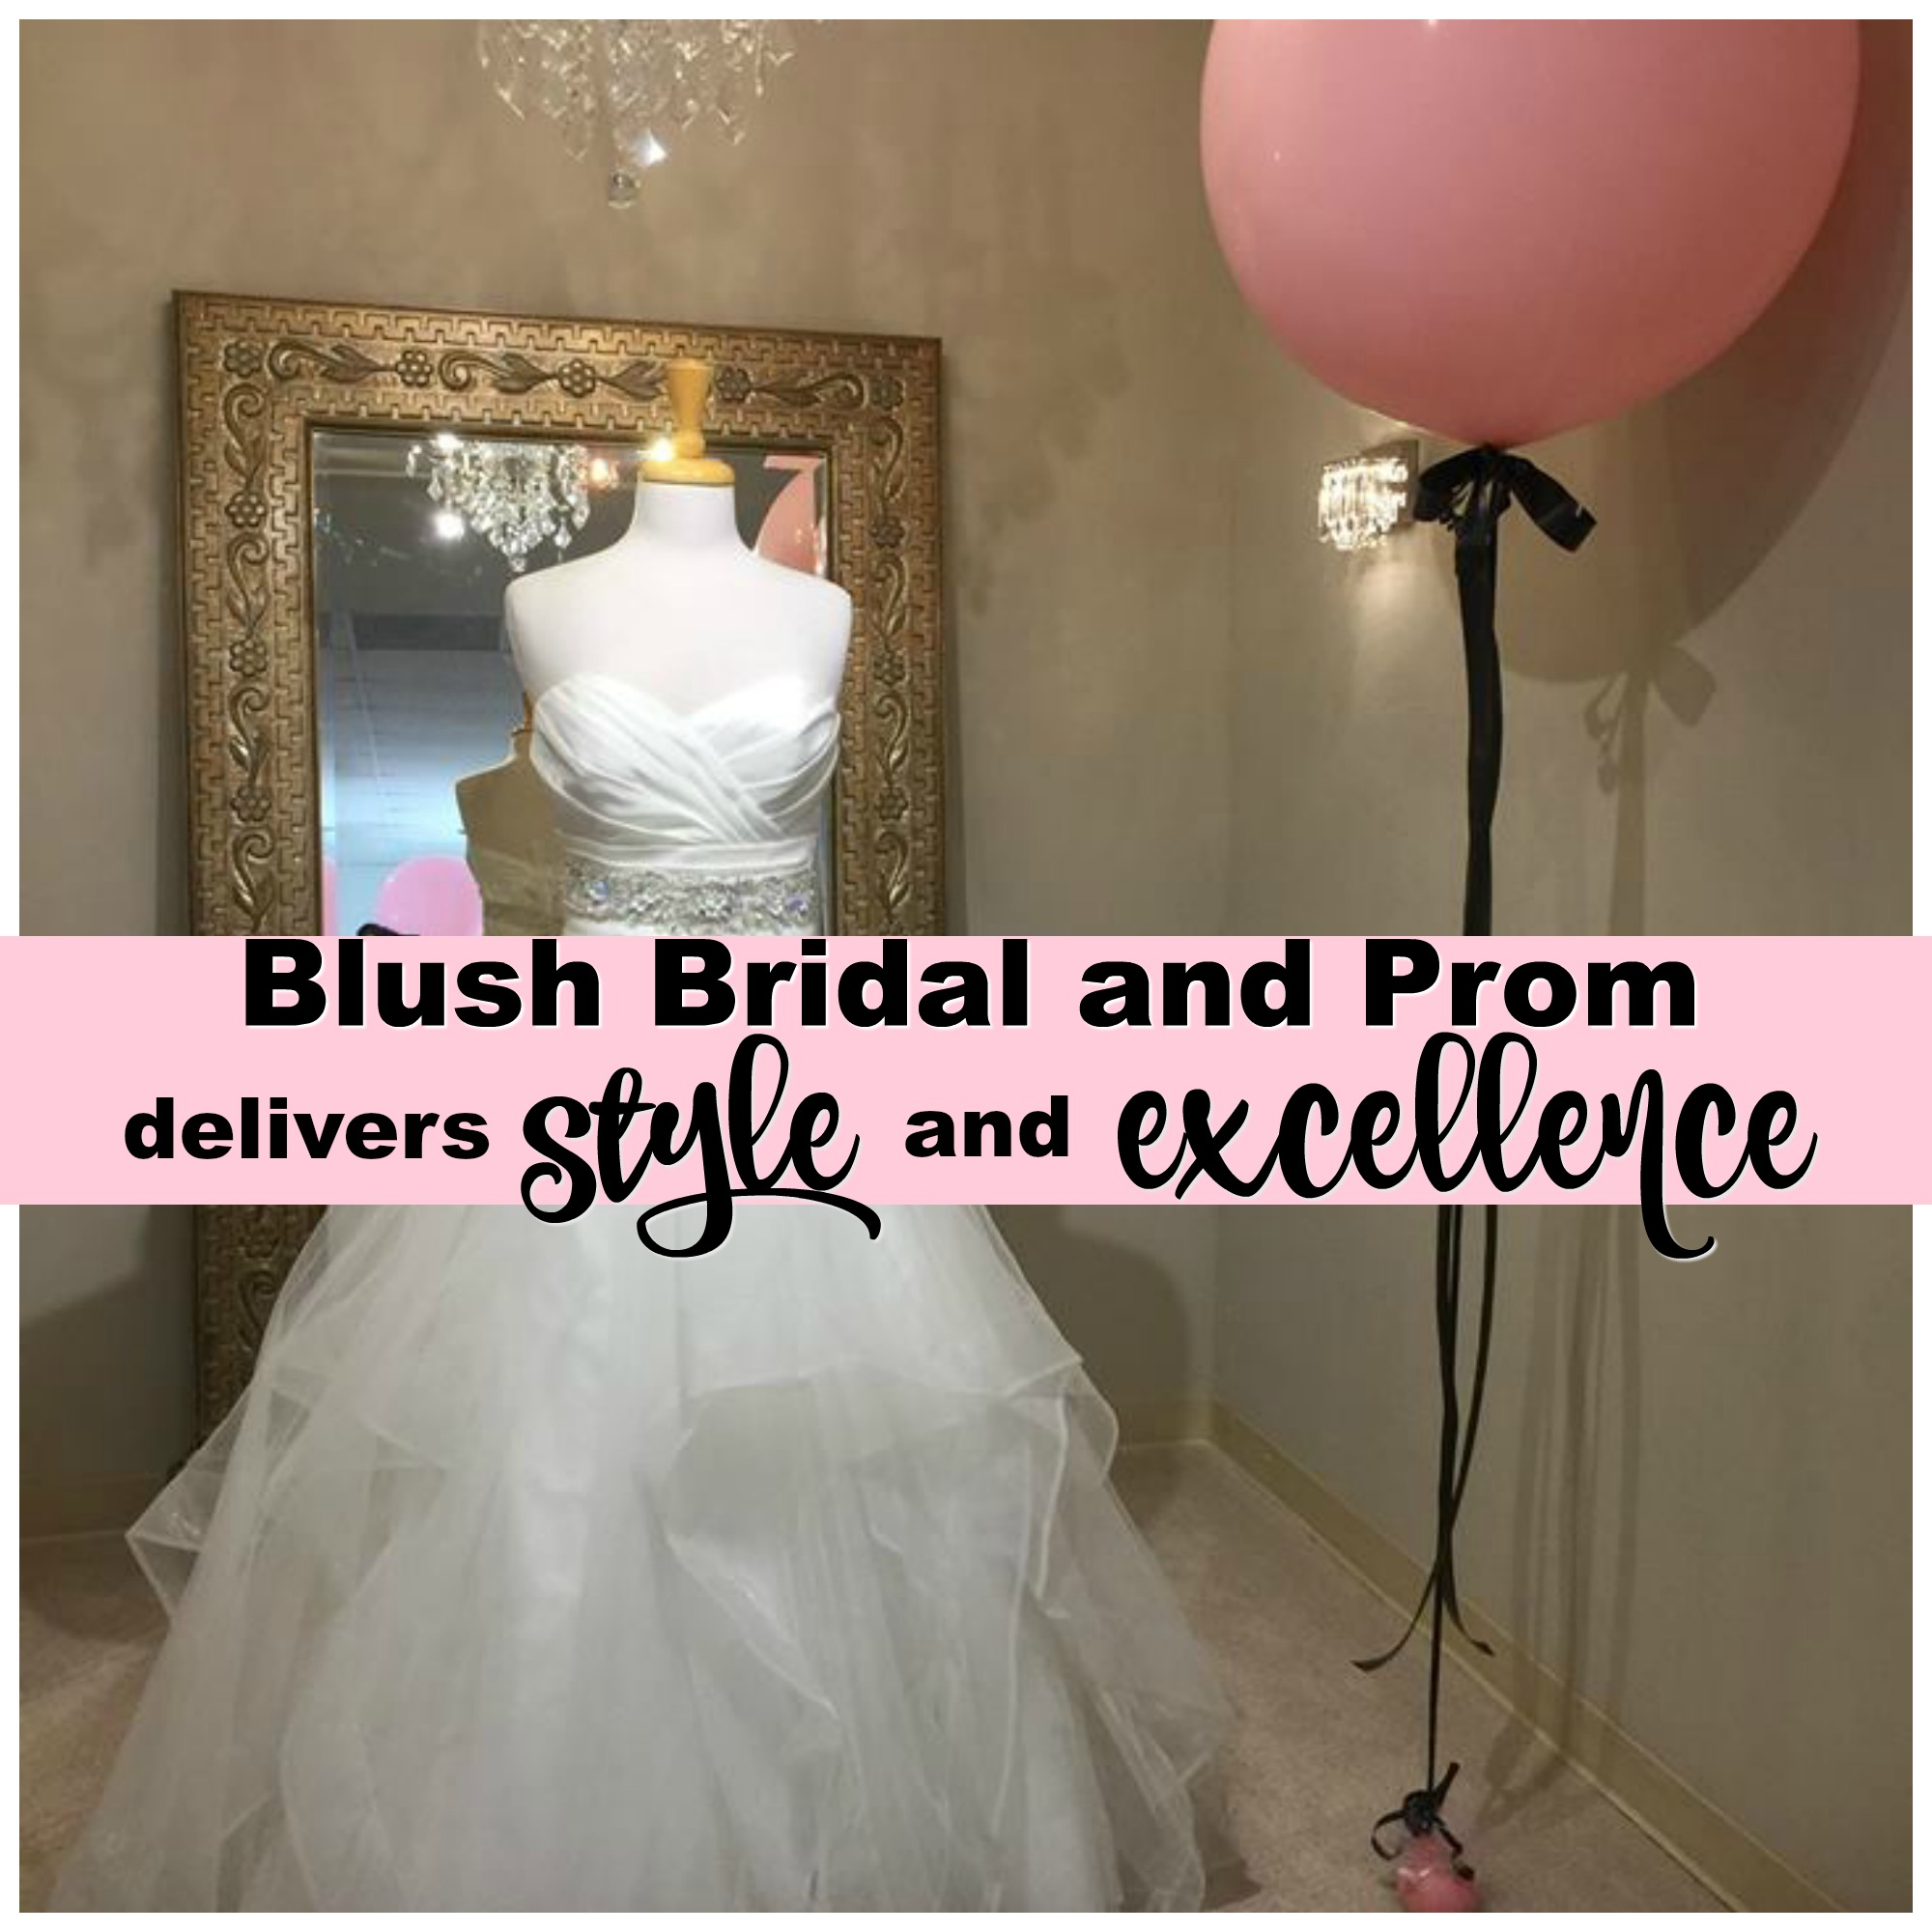 908d9a5d673 Blush Bridal and Prom of Concord